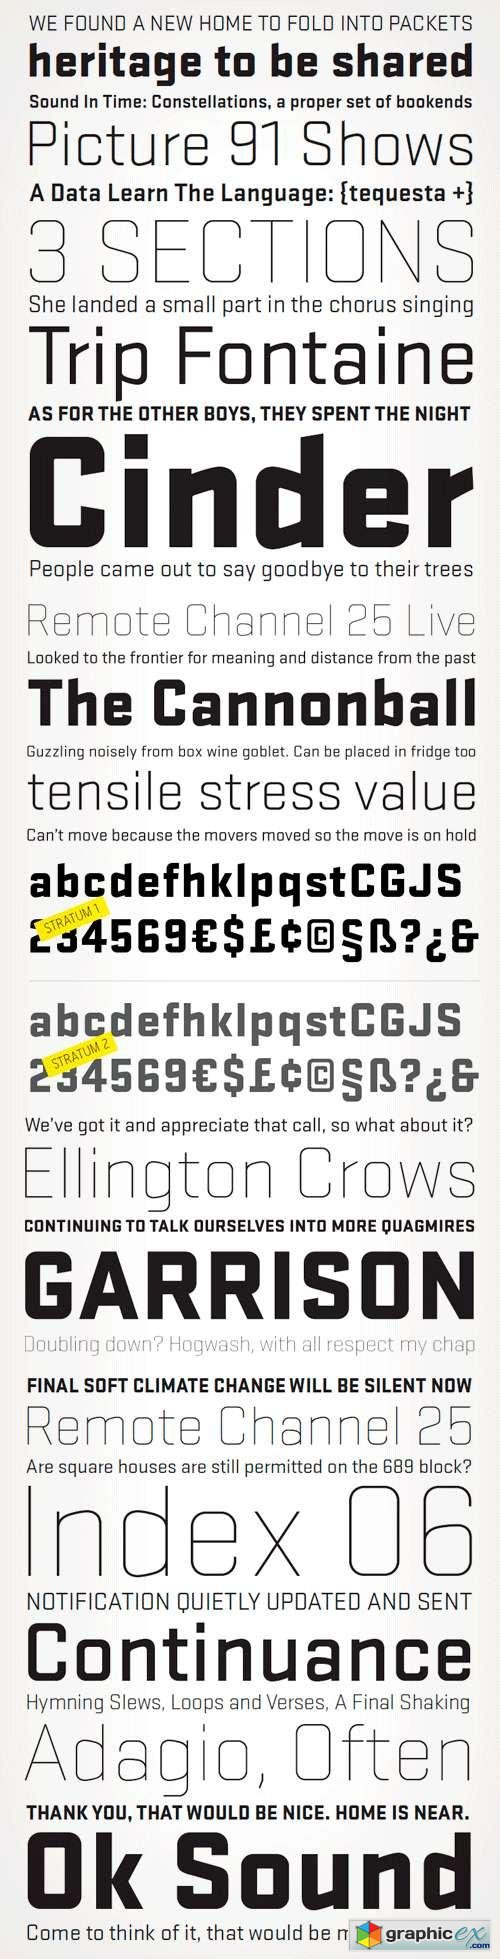 Stratum 1 & 2 Fonts Family - 12 Fonts for $179